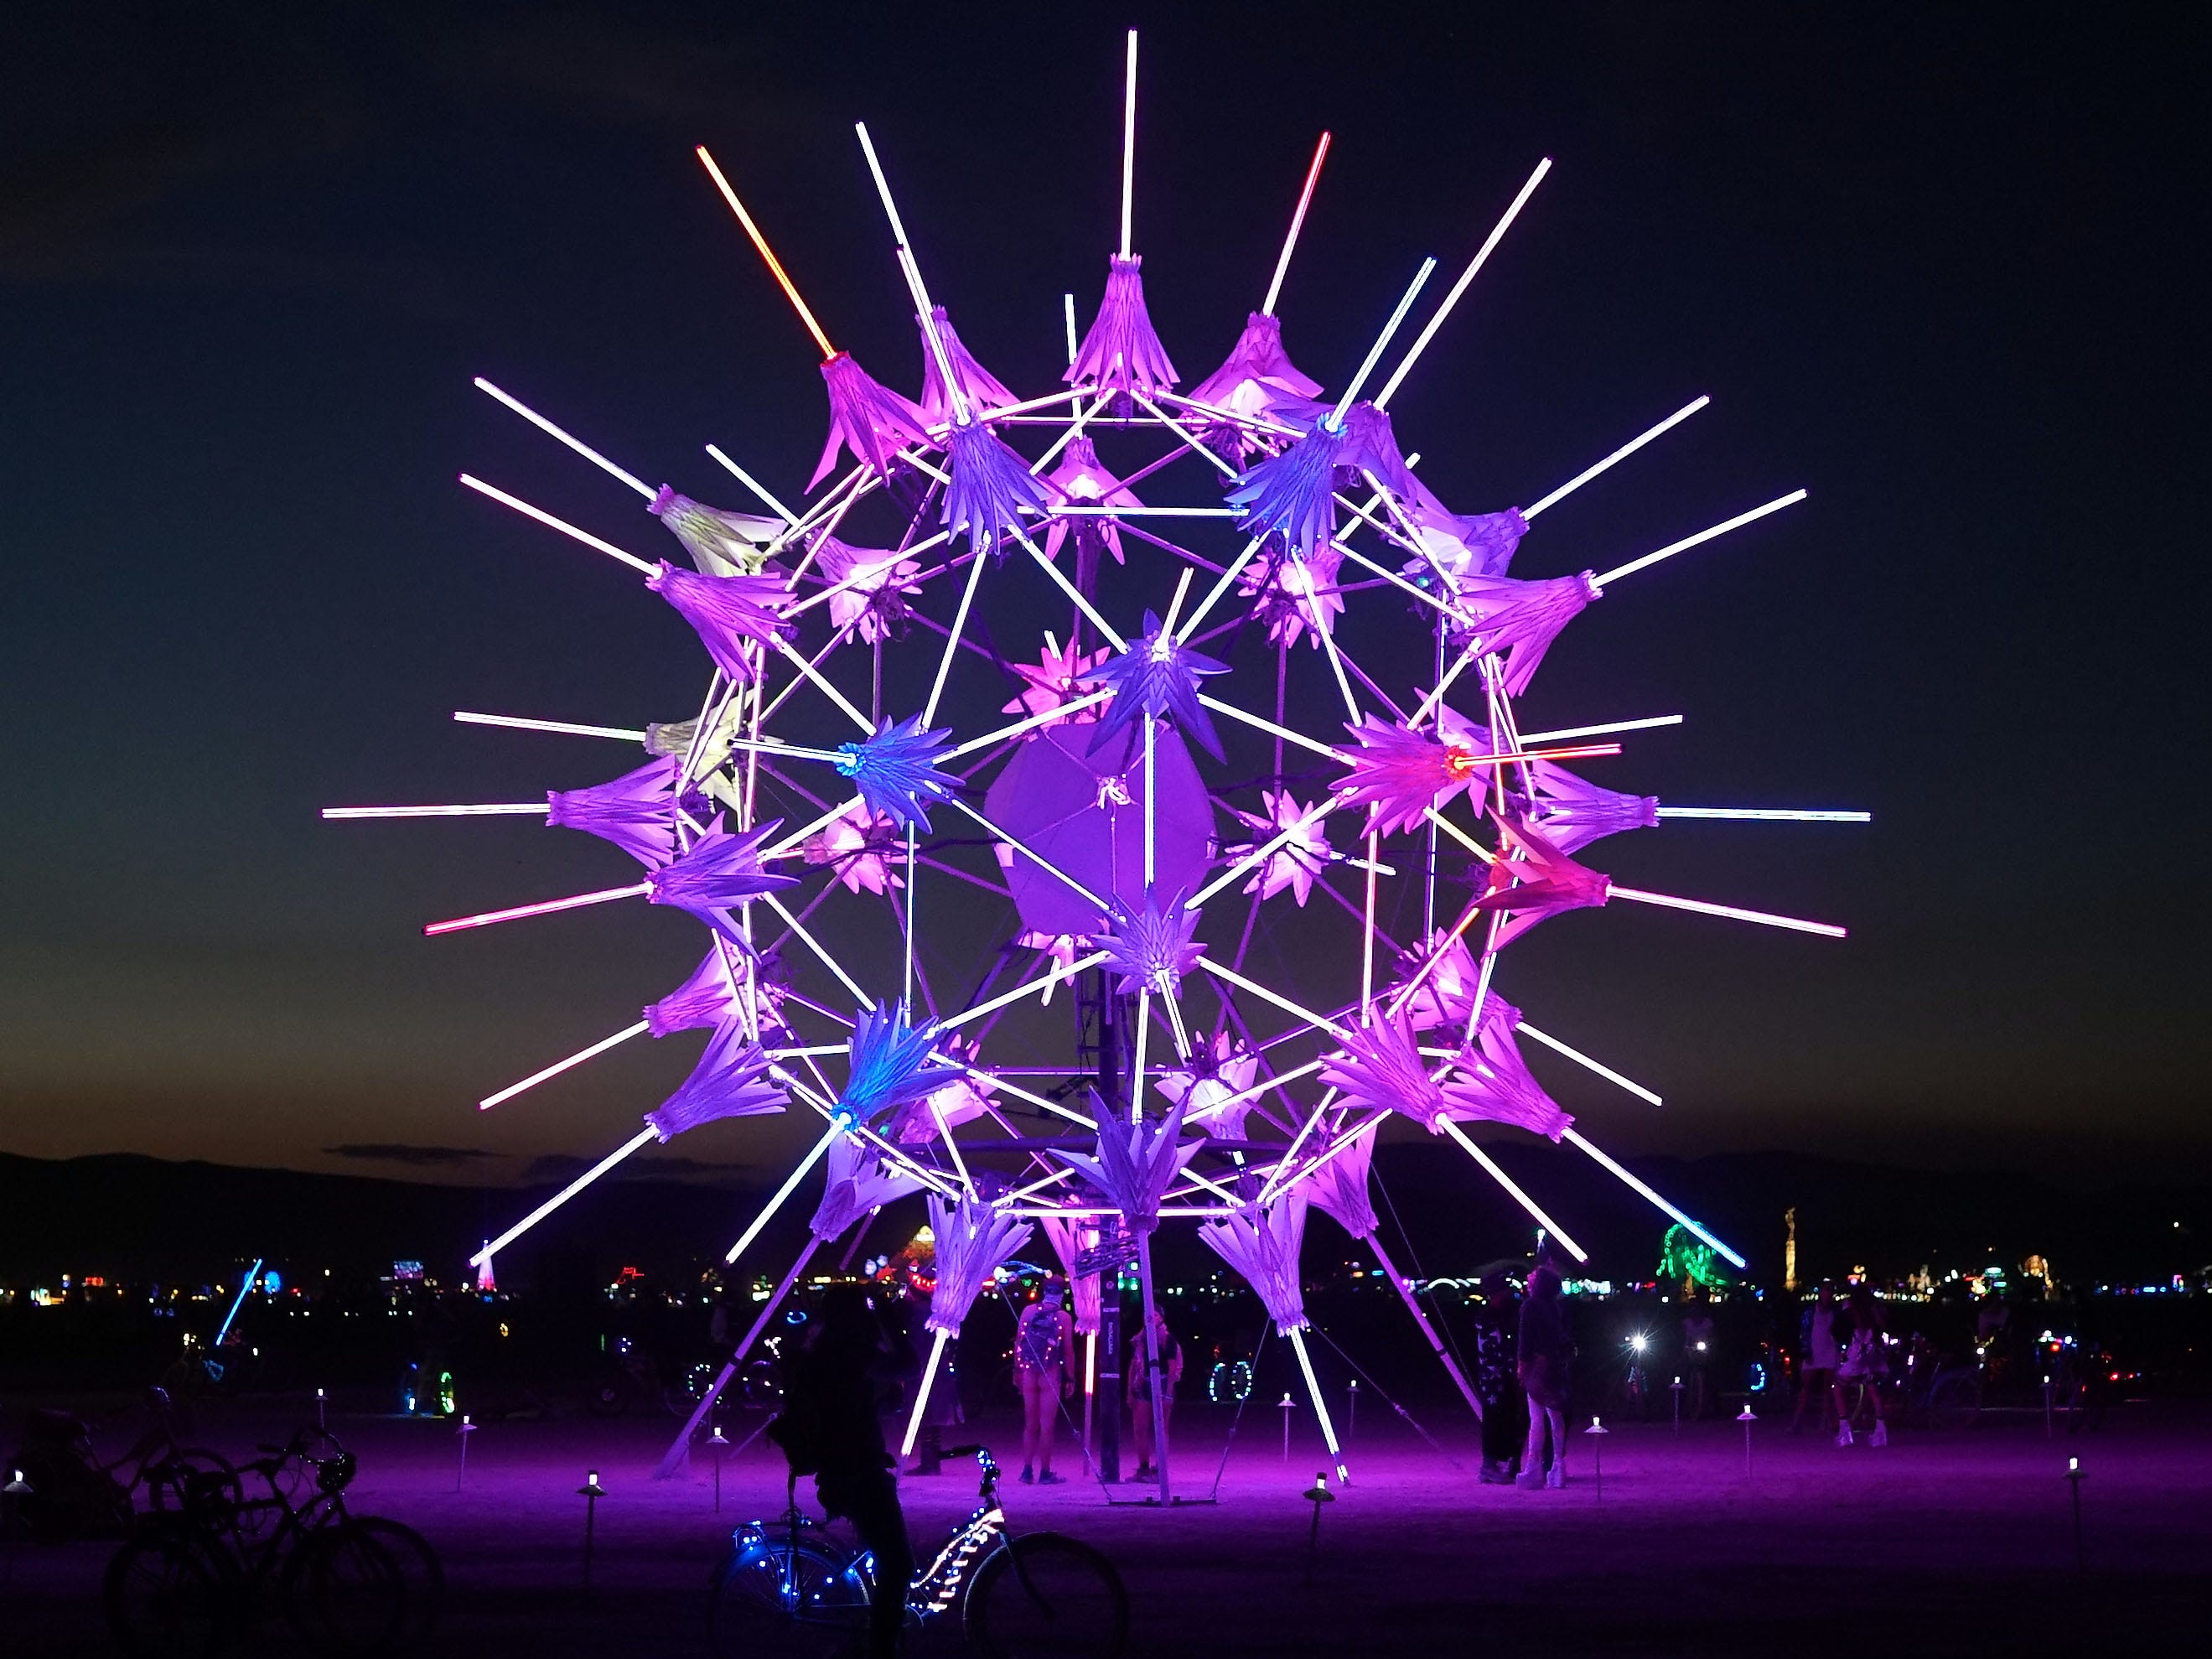 Looking like a magnified piece of pollen, this Burning Man artwork casts a purple glow onto the desert floor.